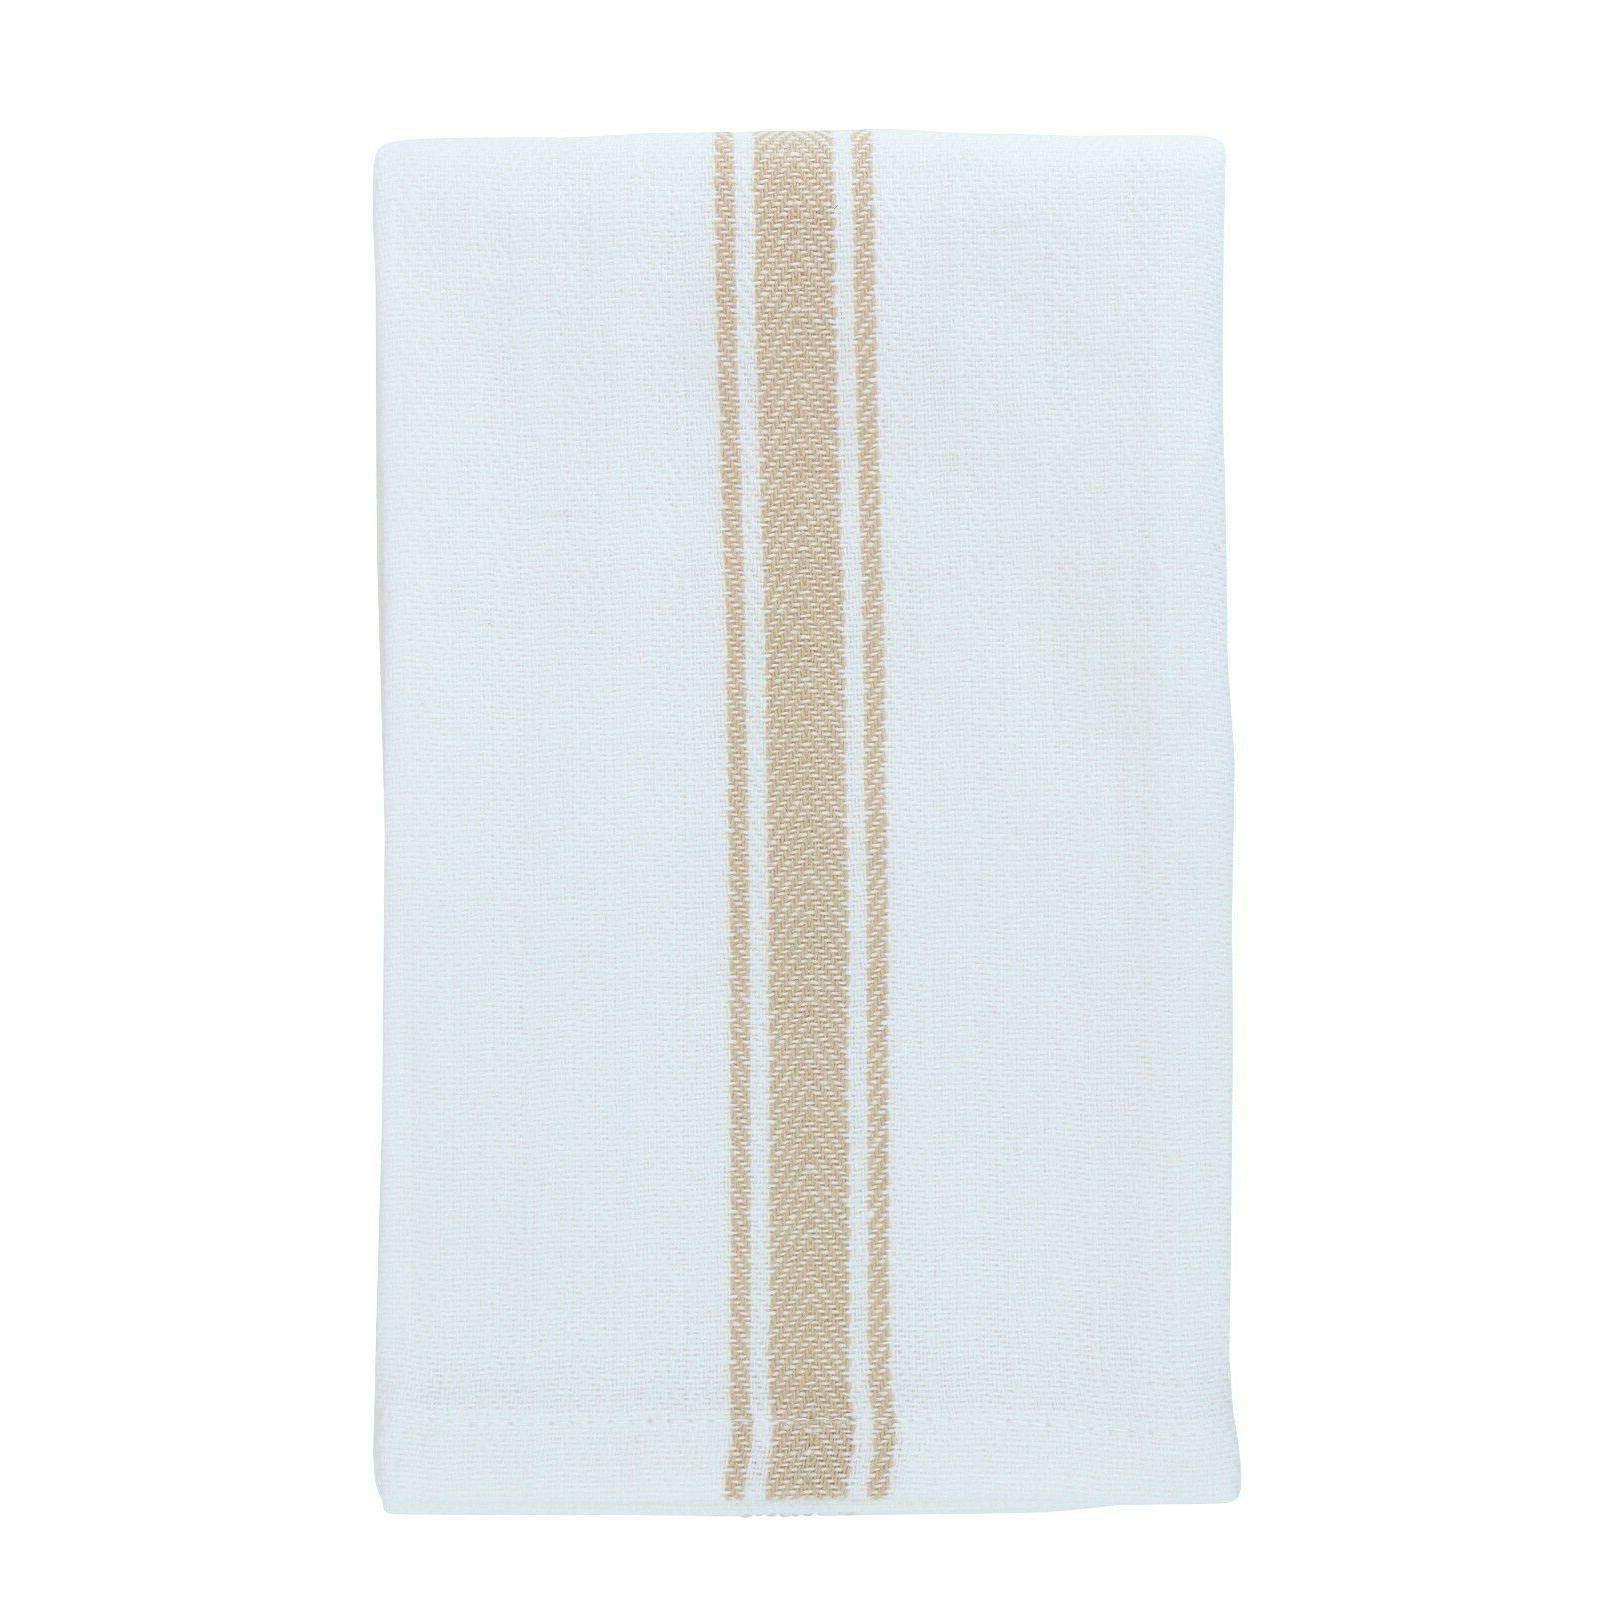 12 of Dish Towels x 25 in - Color